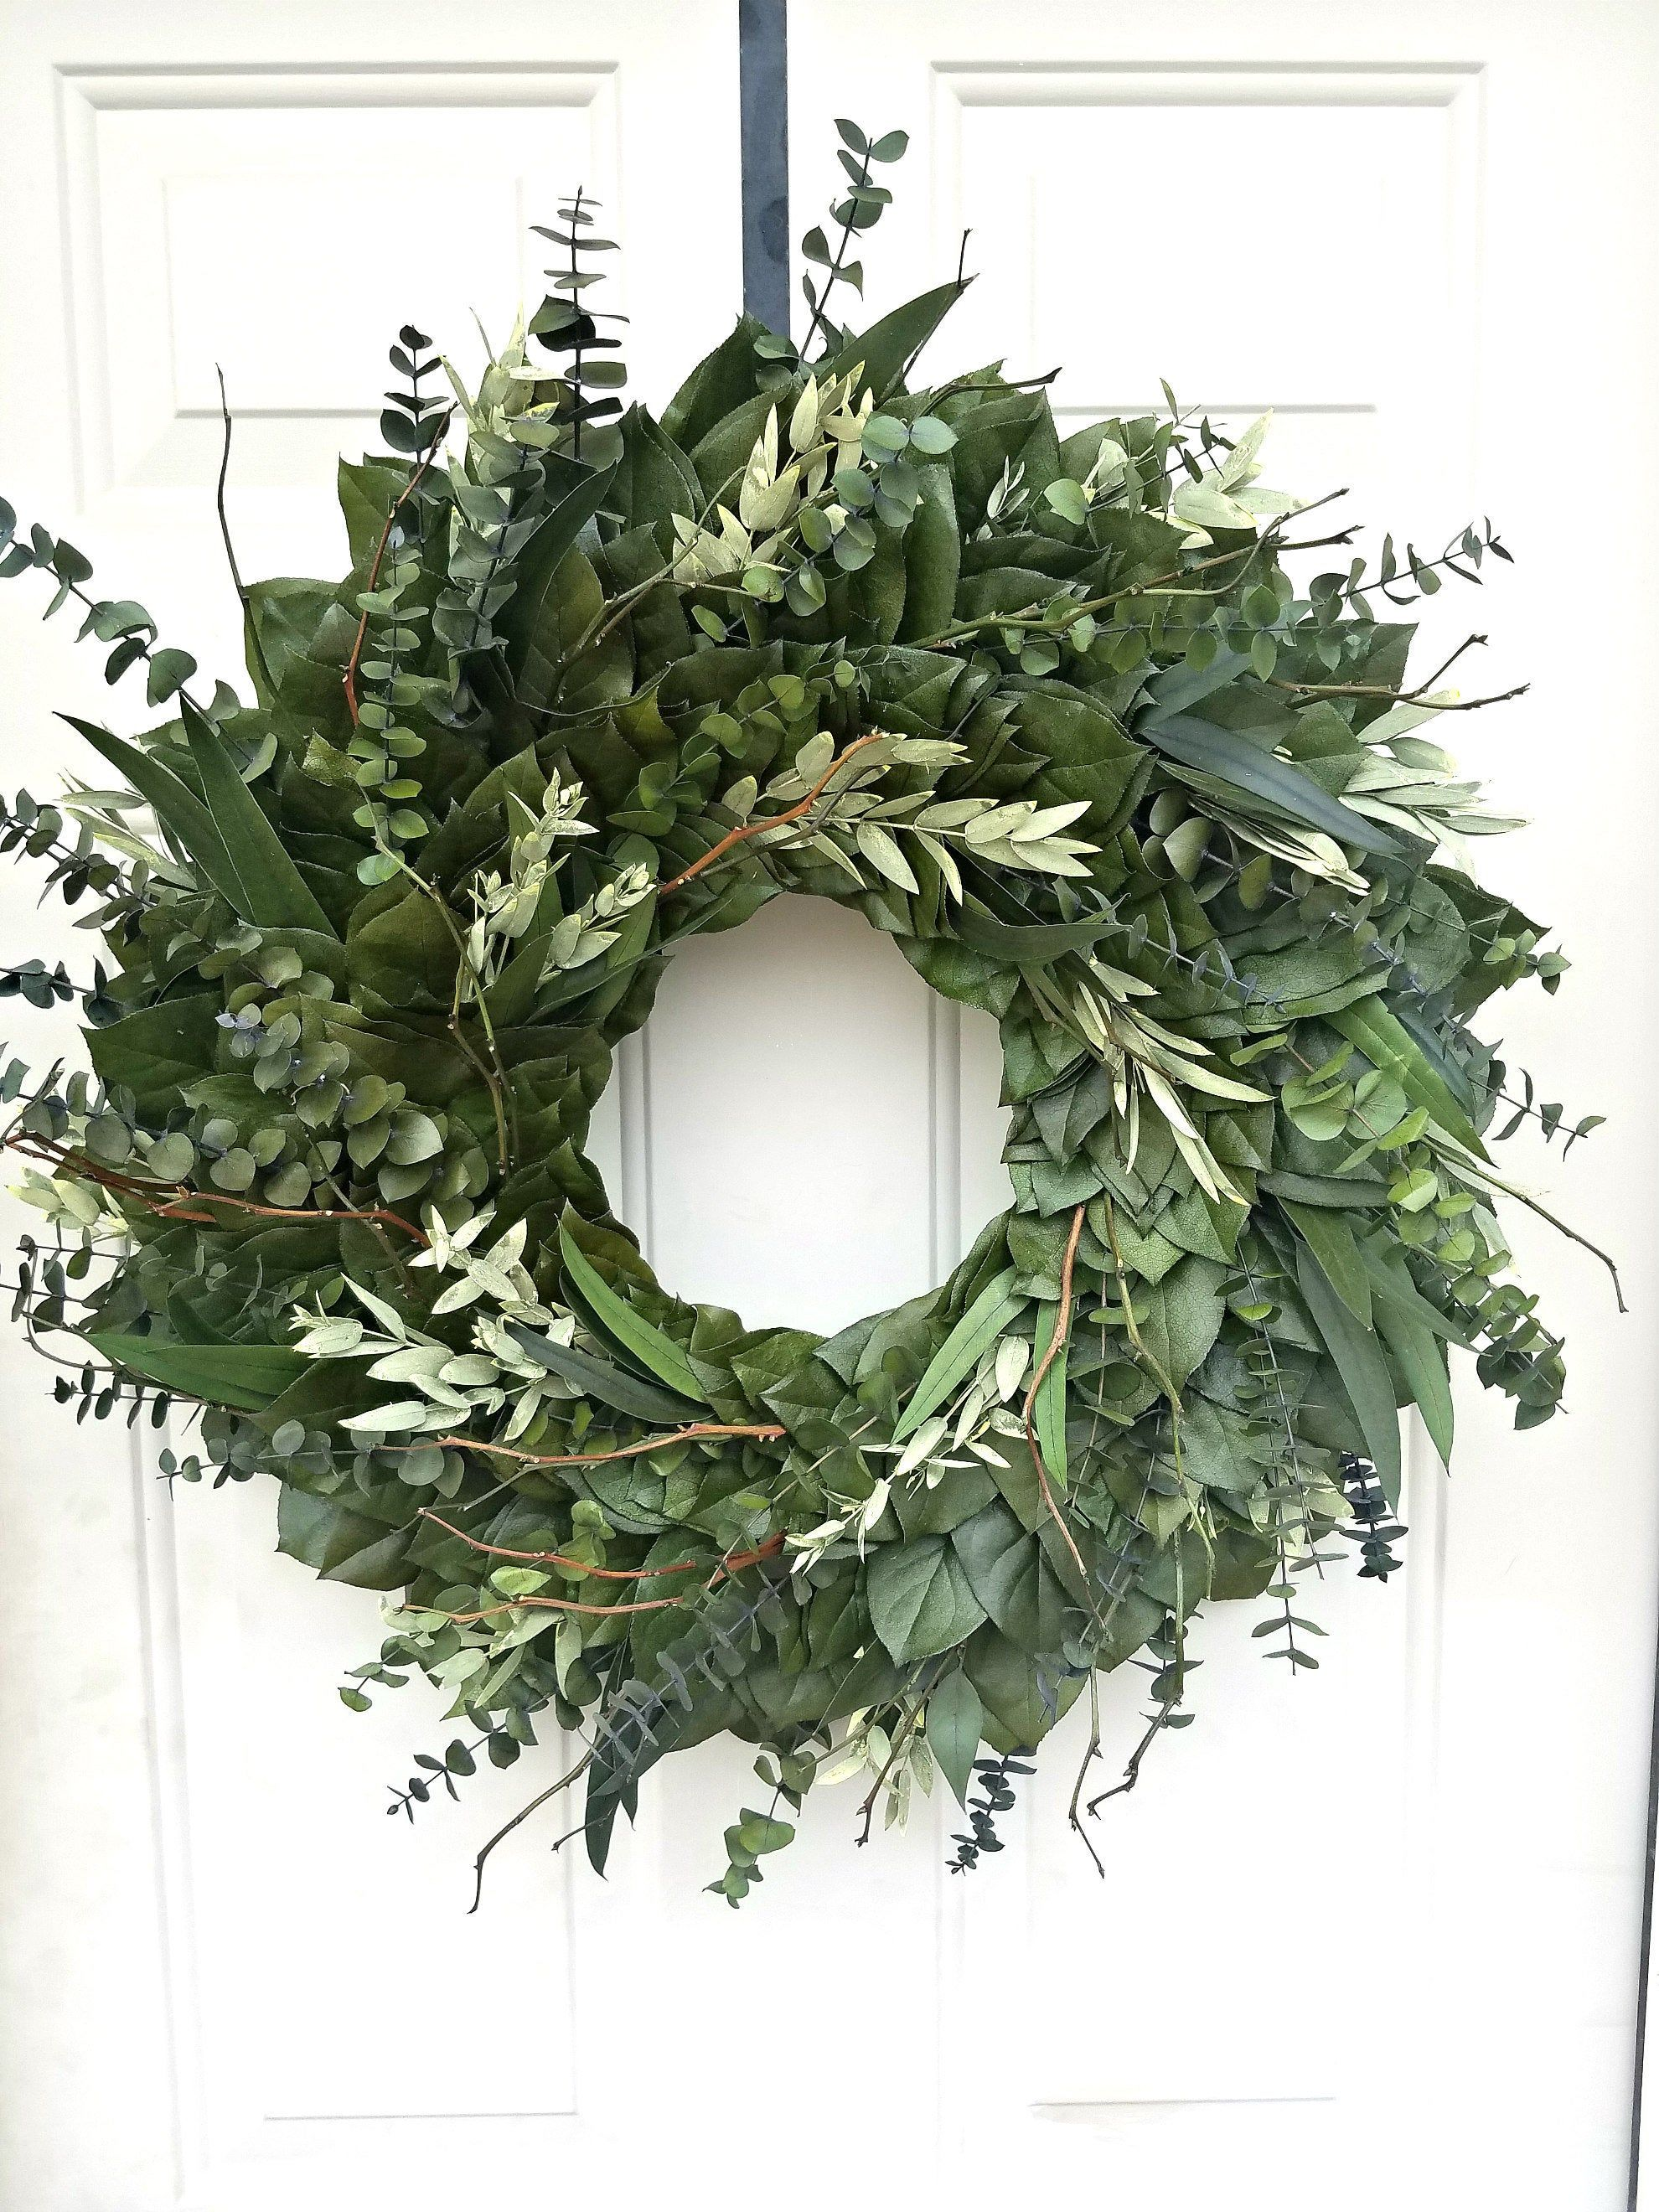 Farmhouse Preserved Leaf Wreath Made With All Natural Materials Preserved To Last Several Seasons Https Etsy Natural Wreath Indoor Wreath Farmhouse Wreath